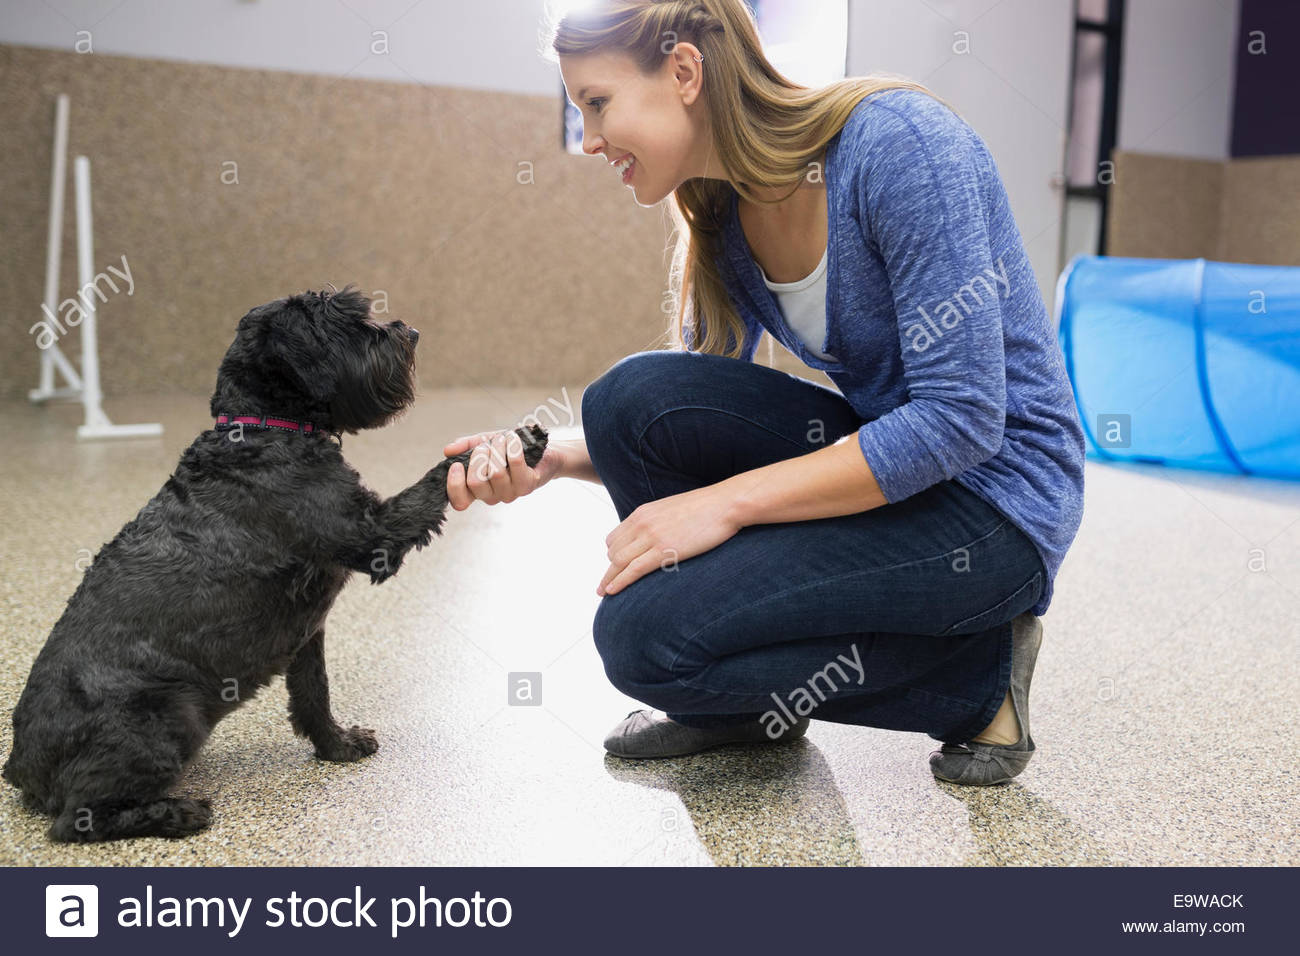 Dog trainer shaking hands with dog - Stock Image